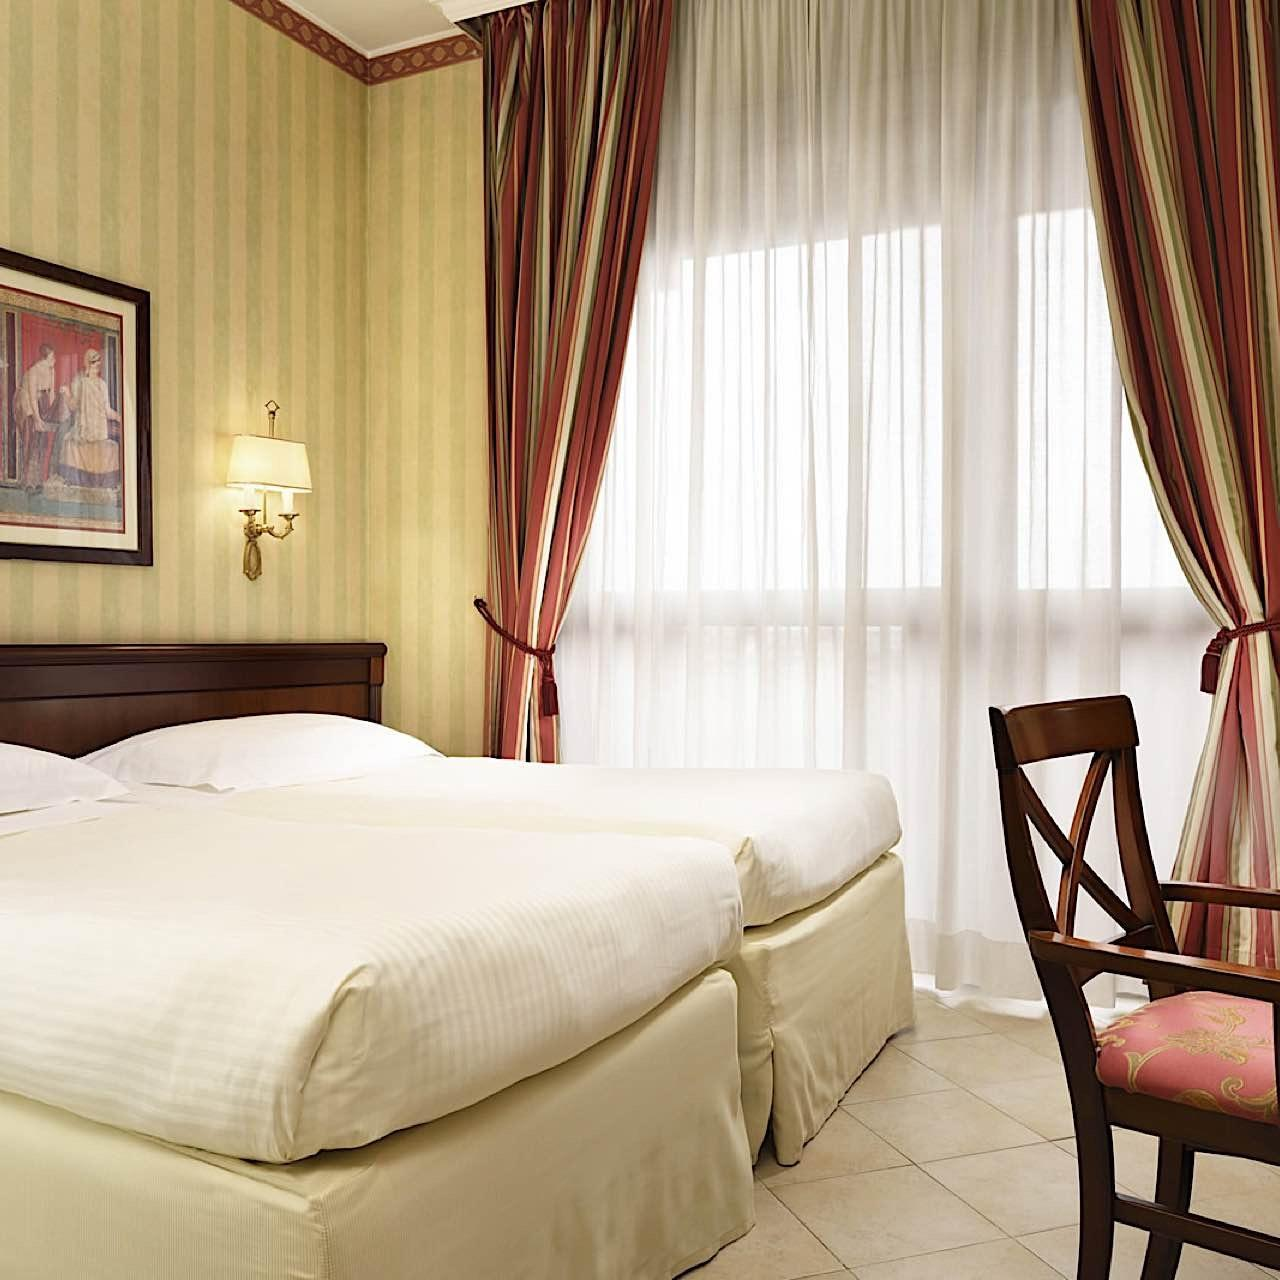 Executive Room | Contessa Jolanda Hotel & Residence Milano